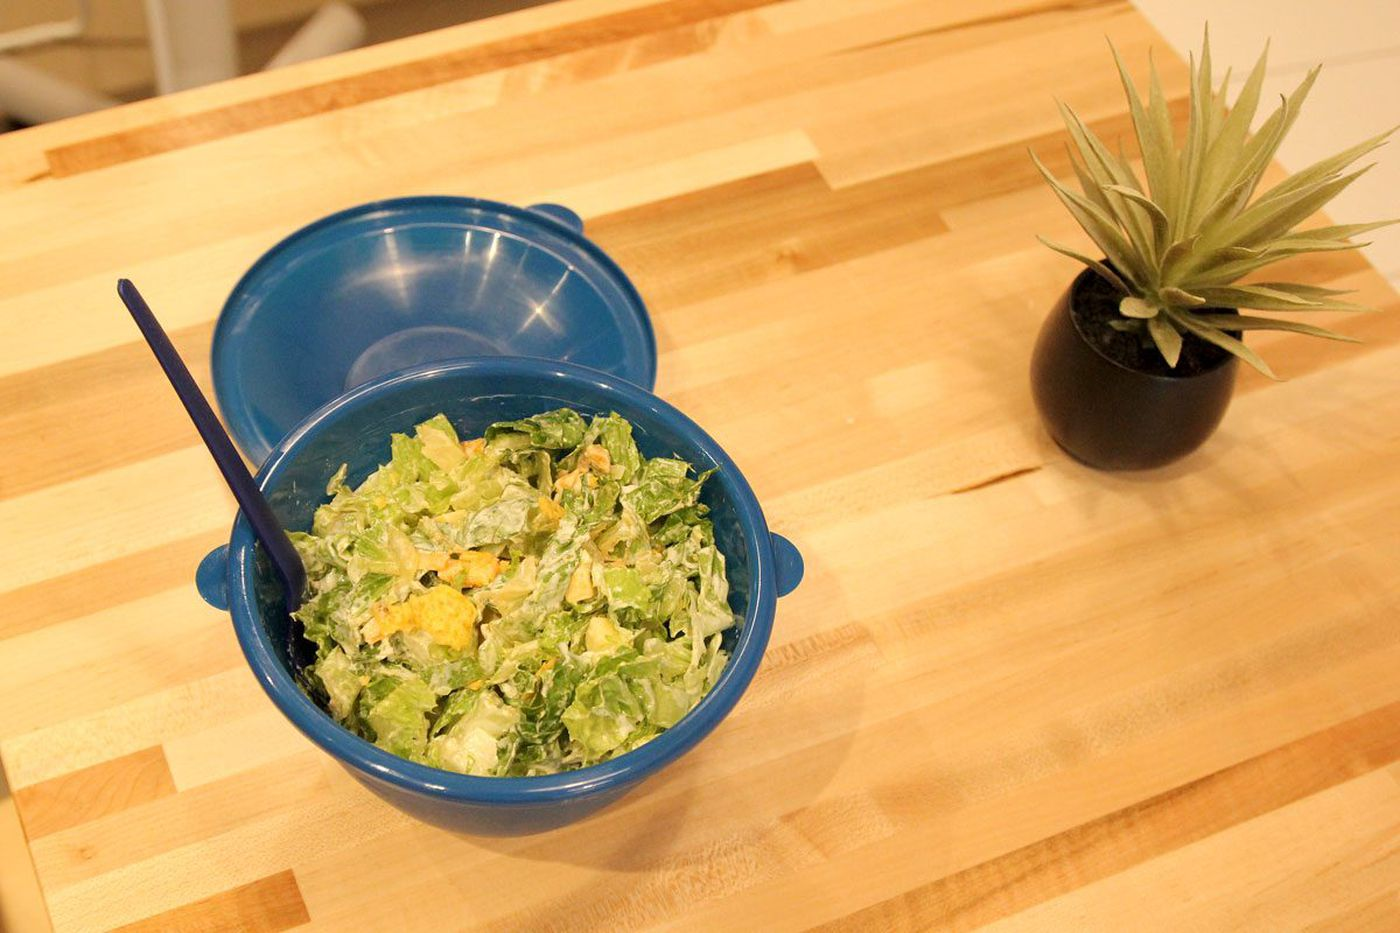 NYC's Just Salad opens in Rittenhouse